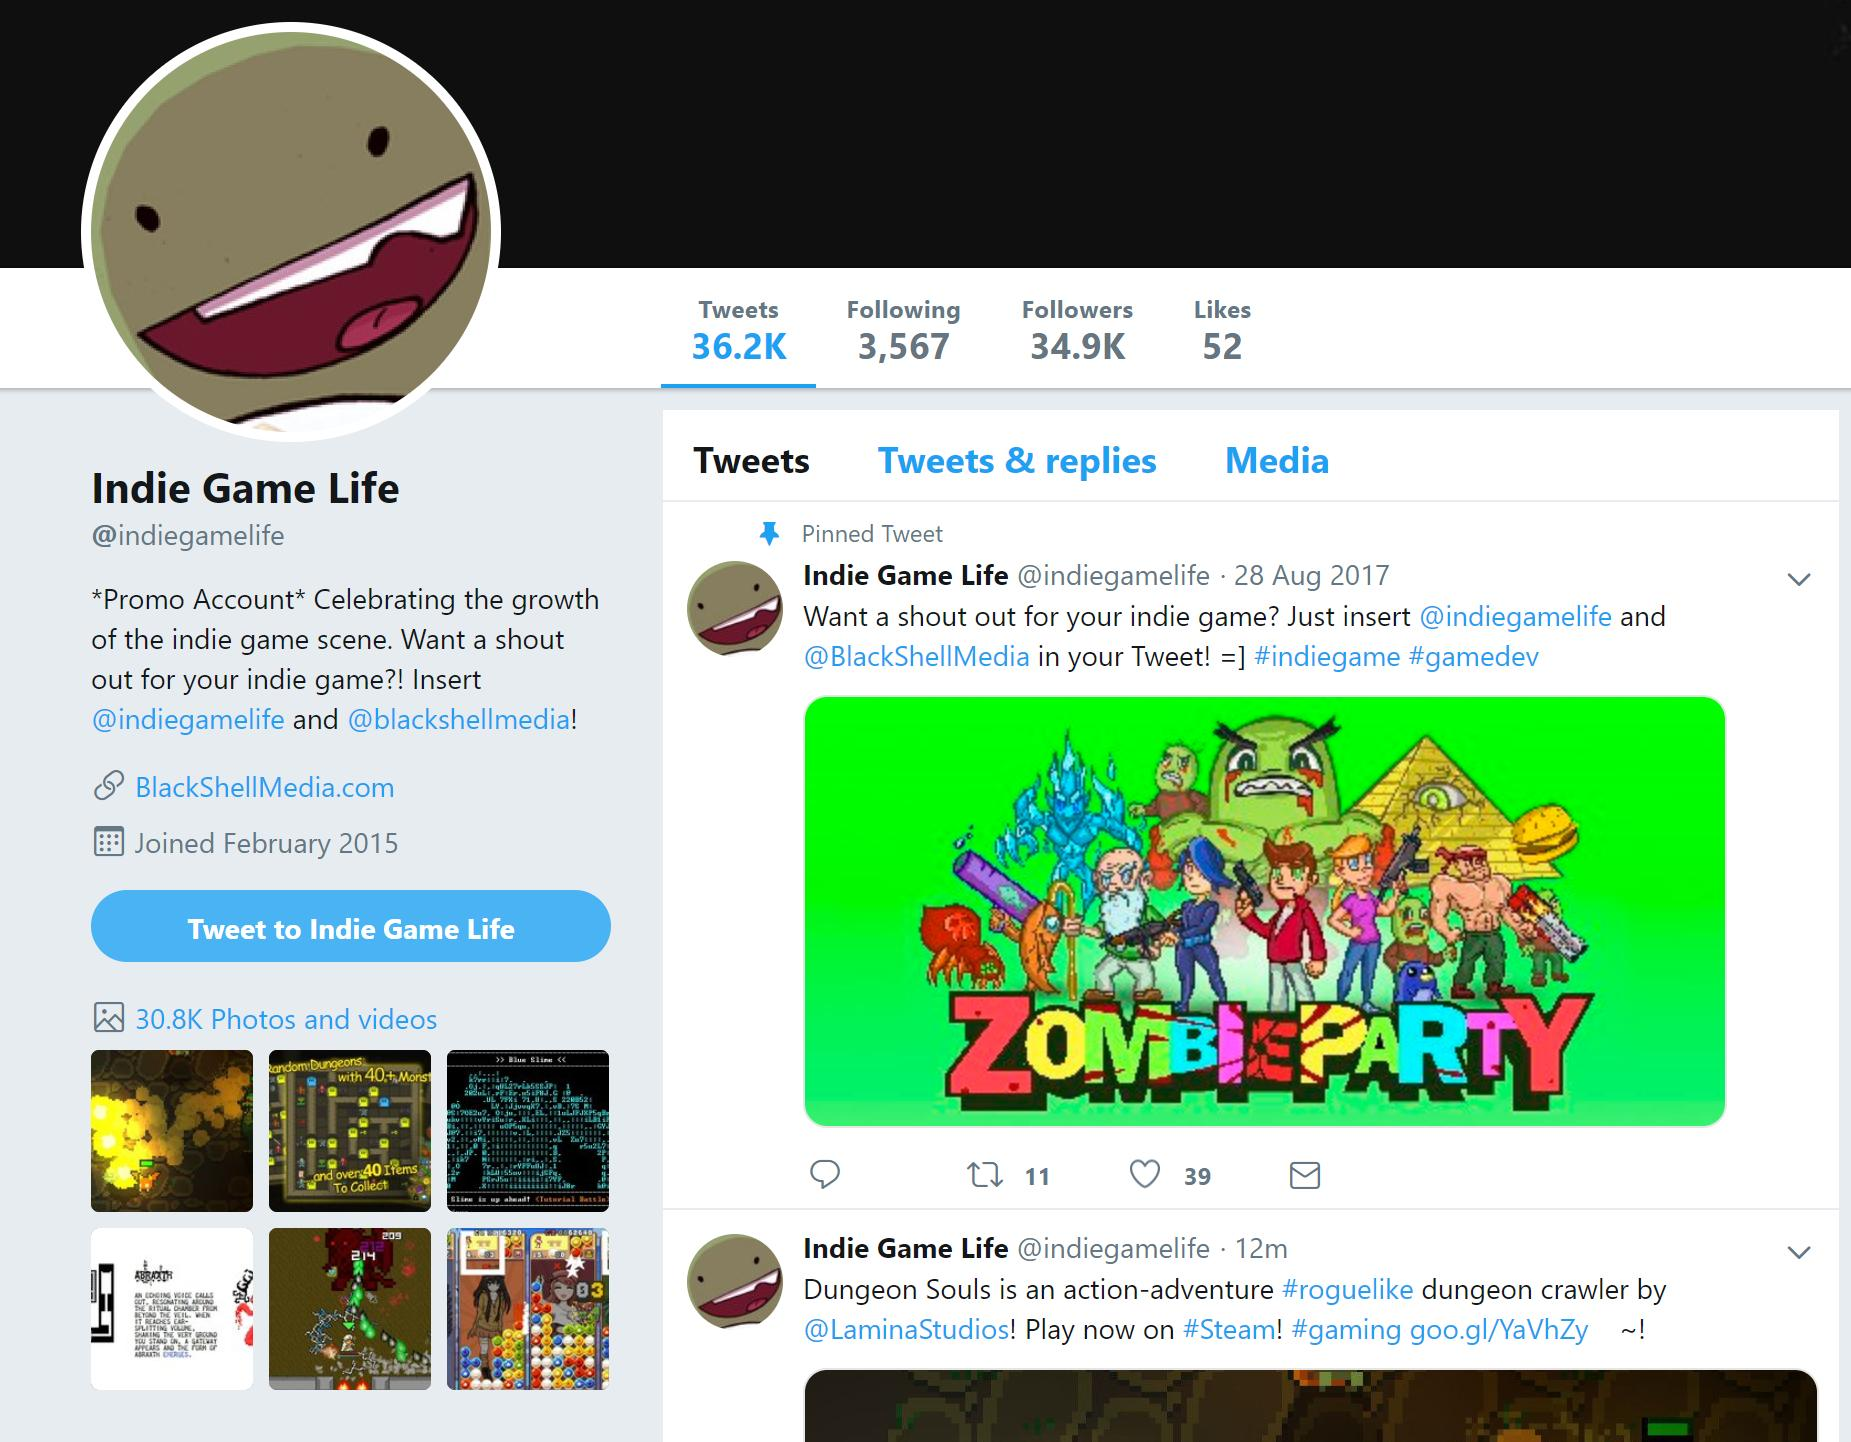 @indiegamelife was a part of this network of twitter accounts